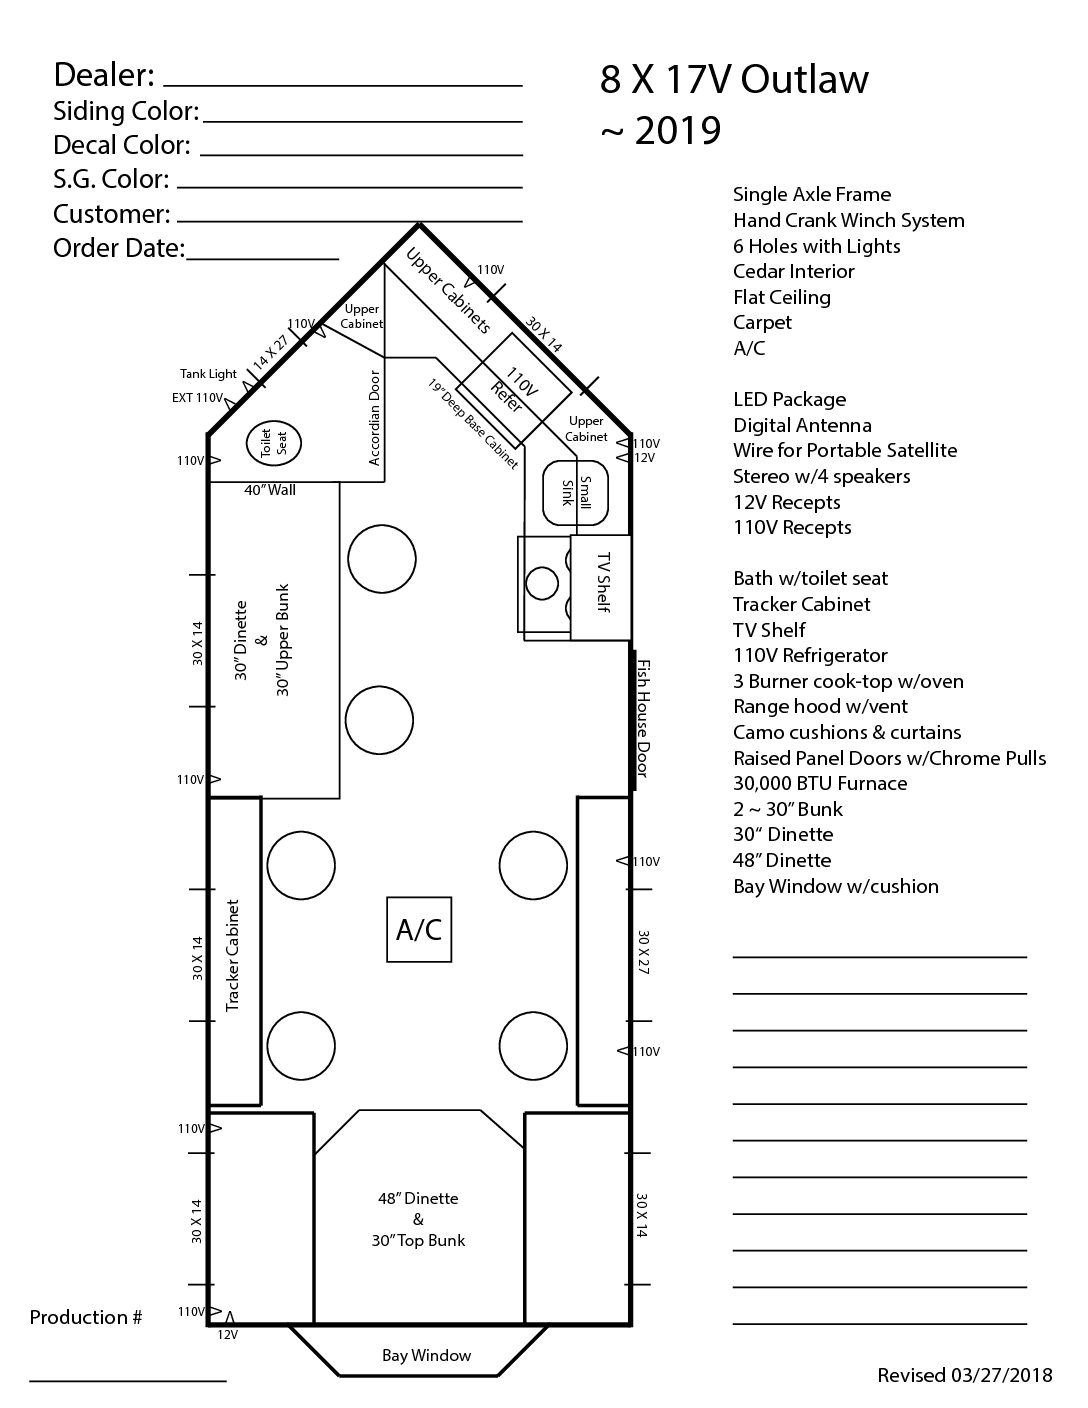 Ice Fishing House Plans Awesome Pin On 8 X 17 Models